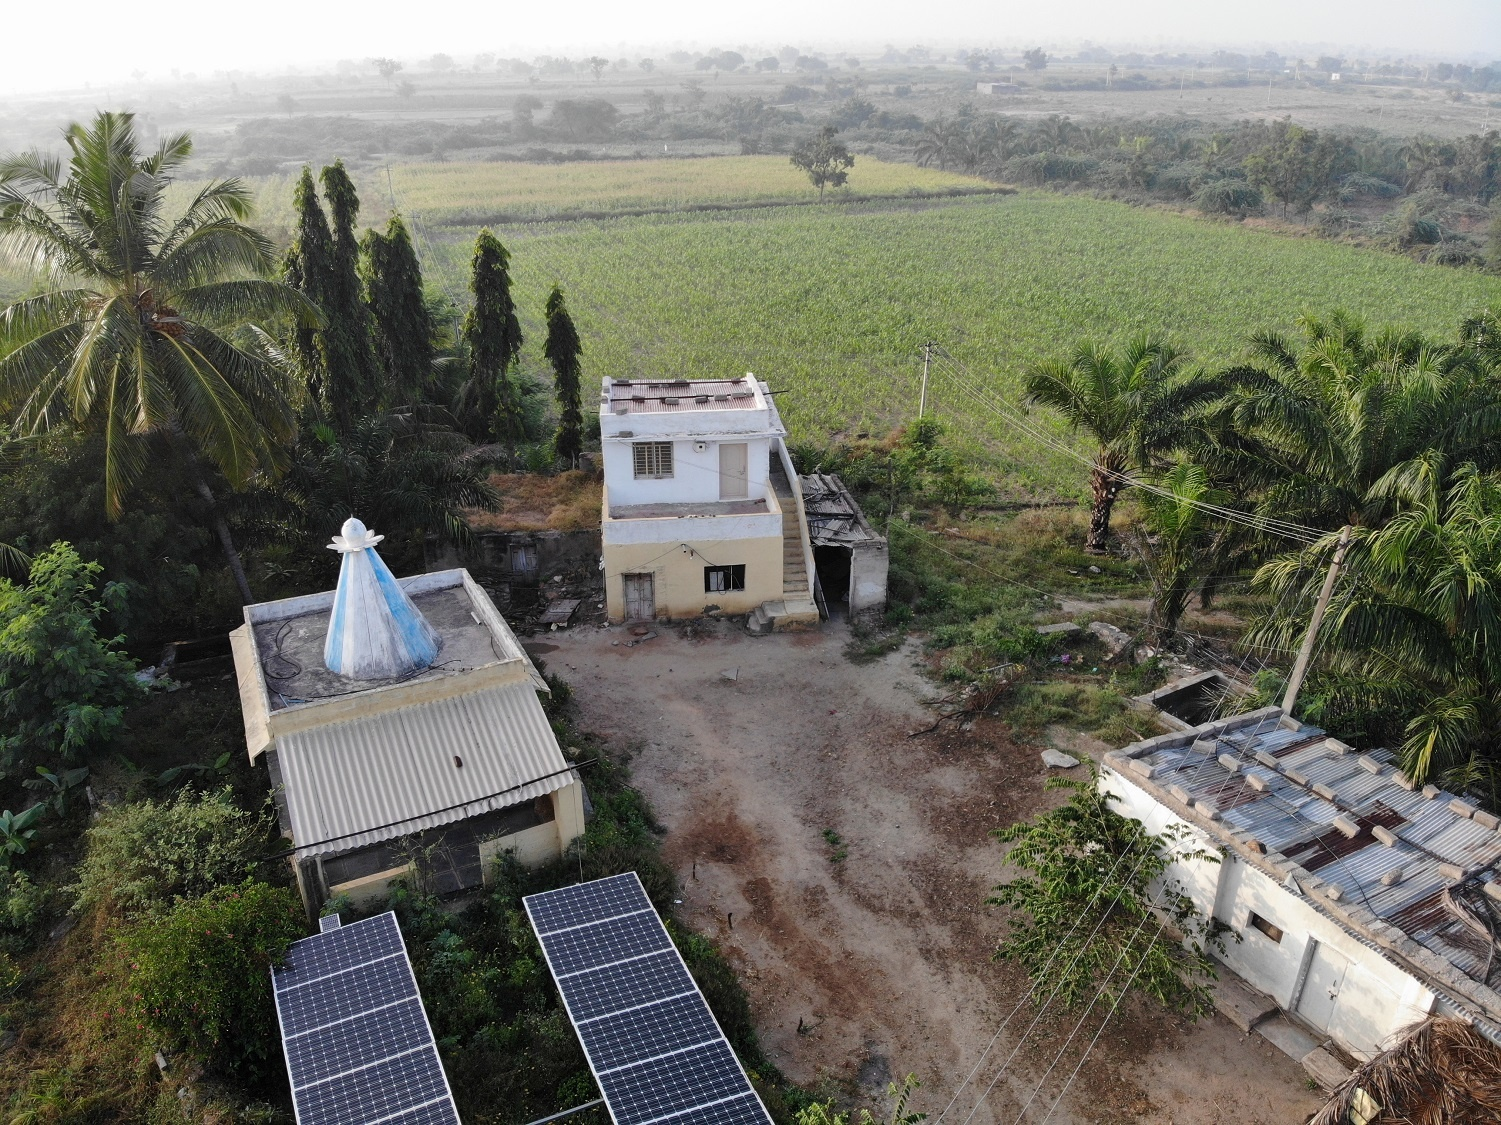 Arial view of DEAL farm Mevundi Gadag district with Solar panel. 27 April, 2020. 13:35.